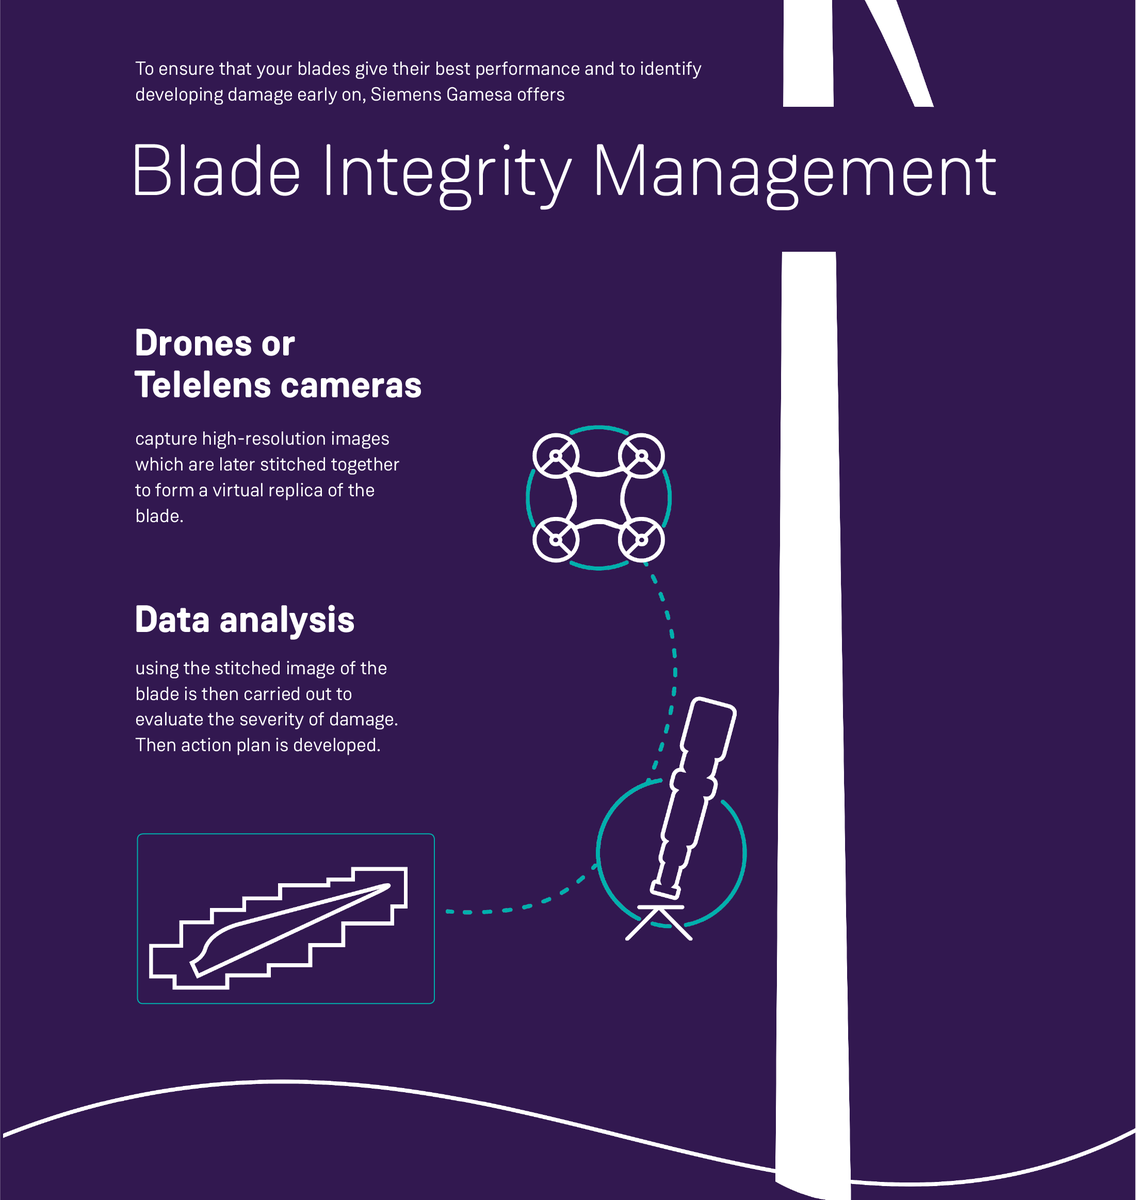 Siemens Gamesa is commited to keeping your blades turning and earning! This week we participated in the Blades Europe Forum organized by @windpower_m. Discover our Blade integrity management, in which we use drones, telelens cameras and an exhaustive data analysis. #WindMotion